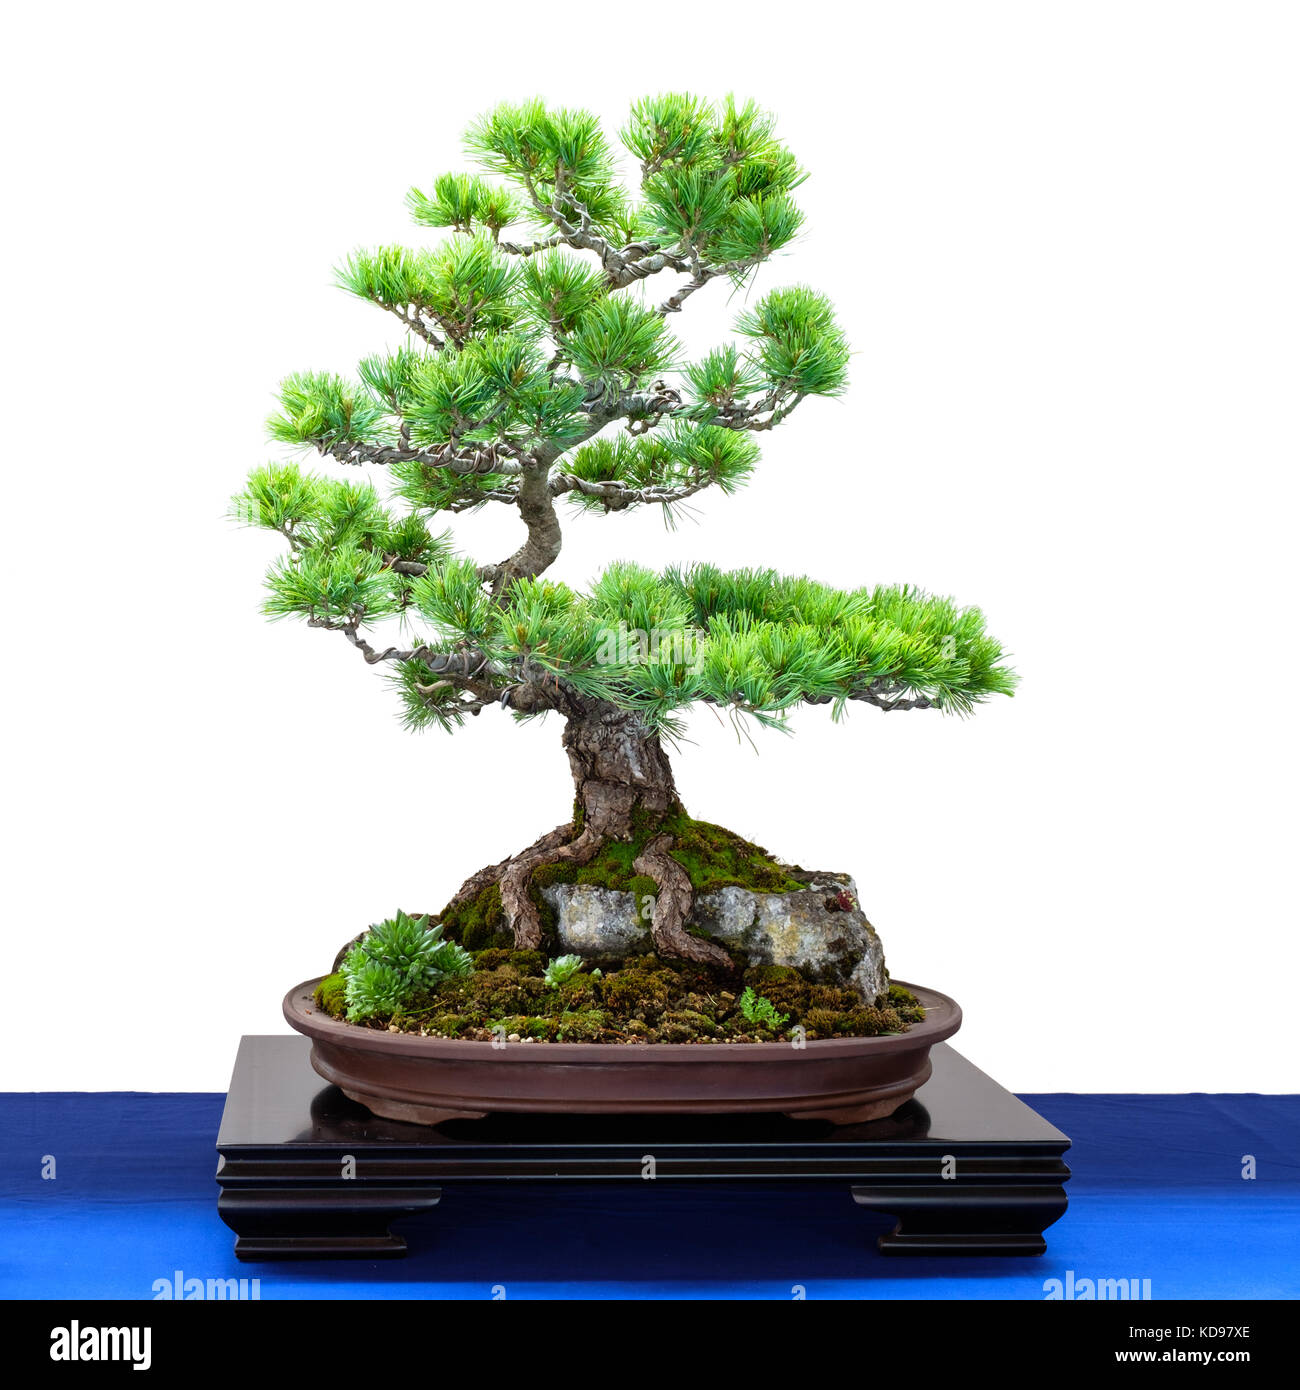 Japanese five finger pine (Pinus parviflora) conifer as Bonsai tree is growing over a rock - Stock Image